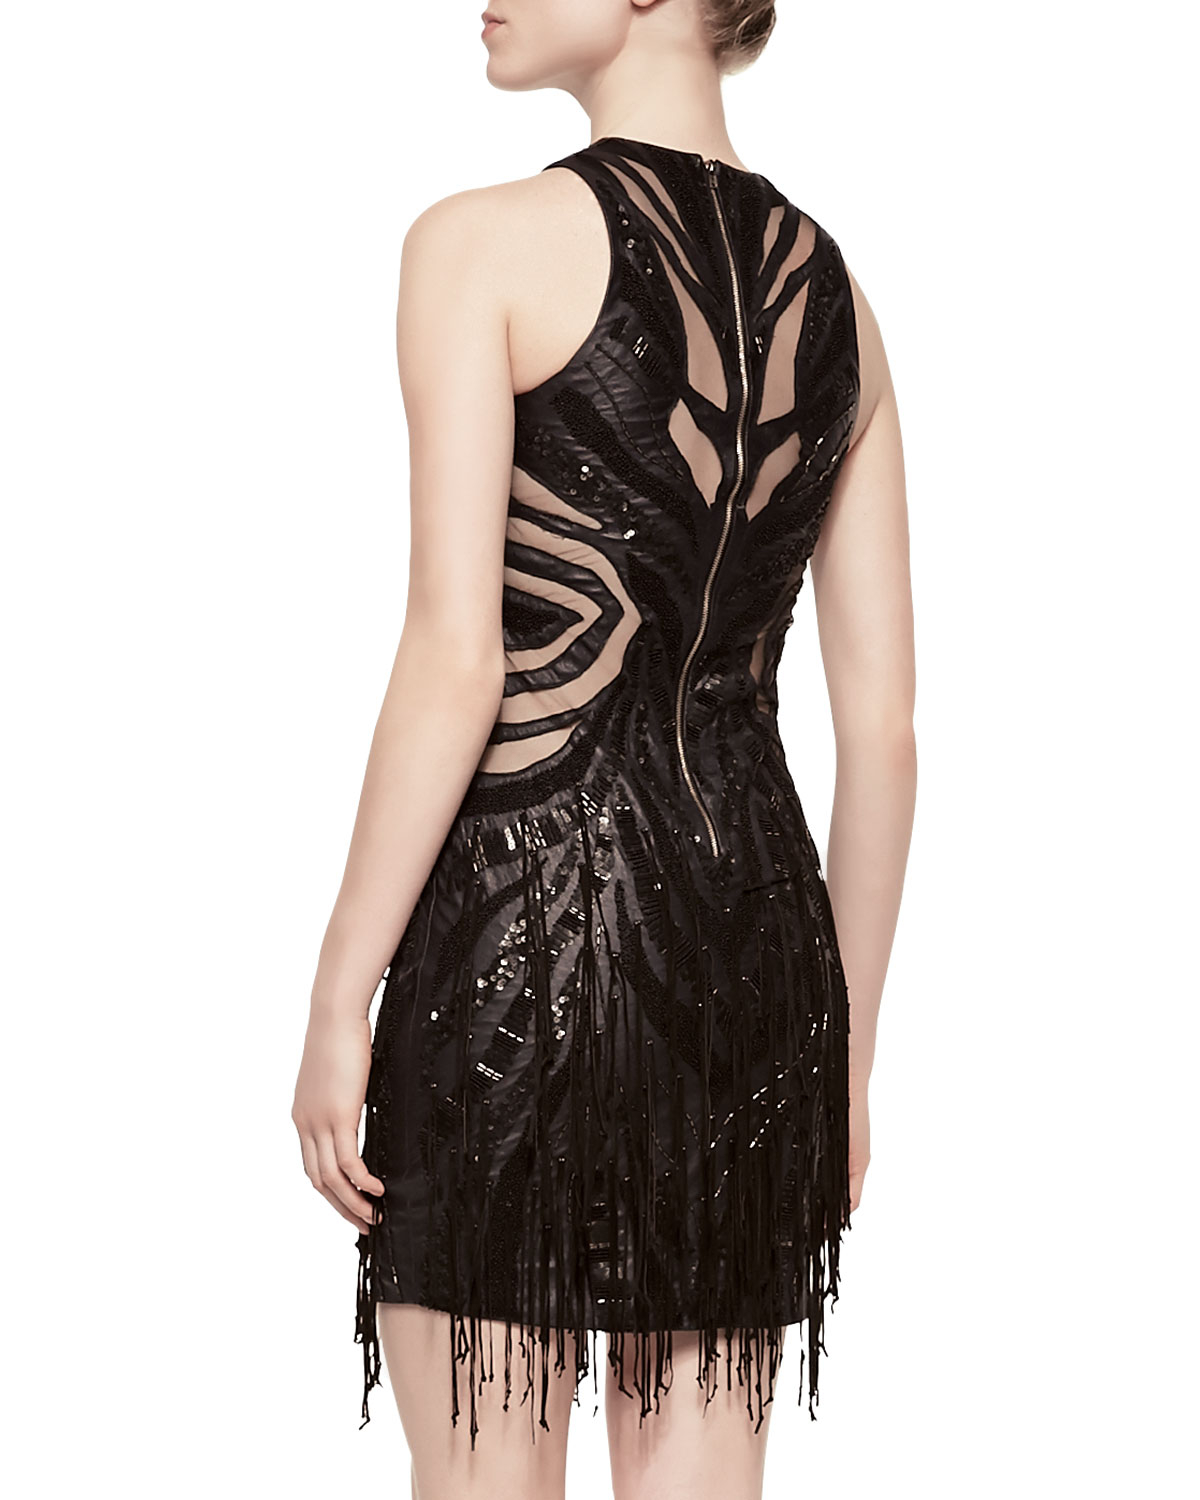 Cut Out Fringe Dress